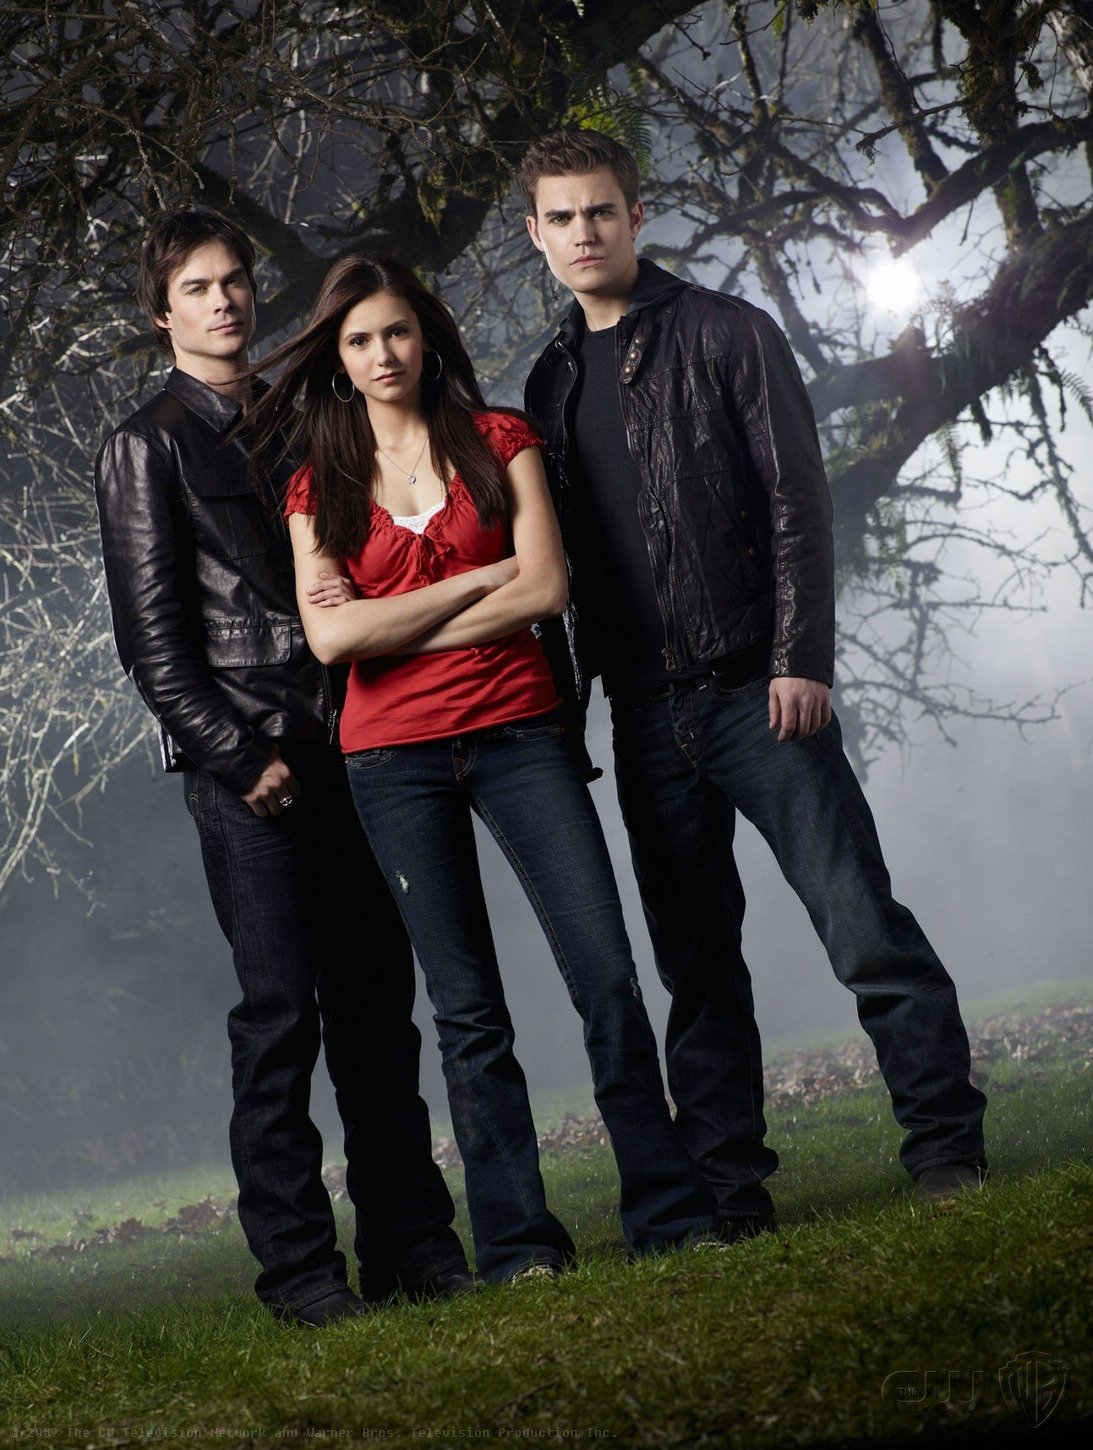 http://www.tvposter.net/posters/the_vampire_diaries_2009_137_poster.jpg